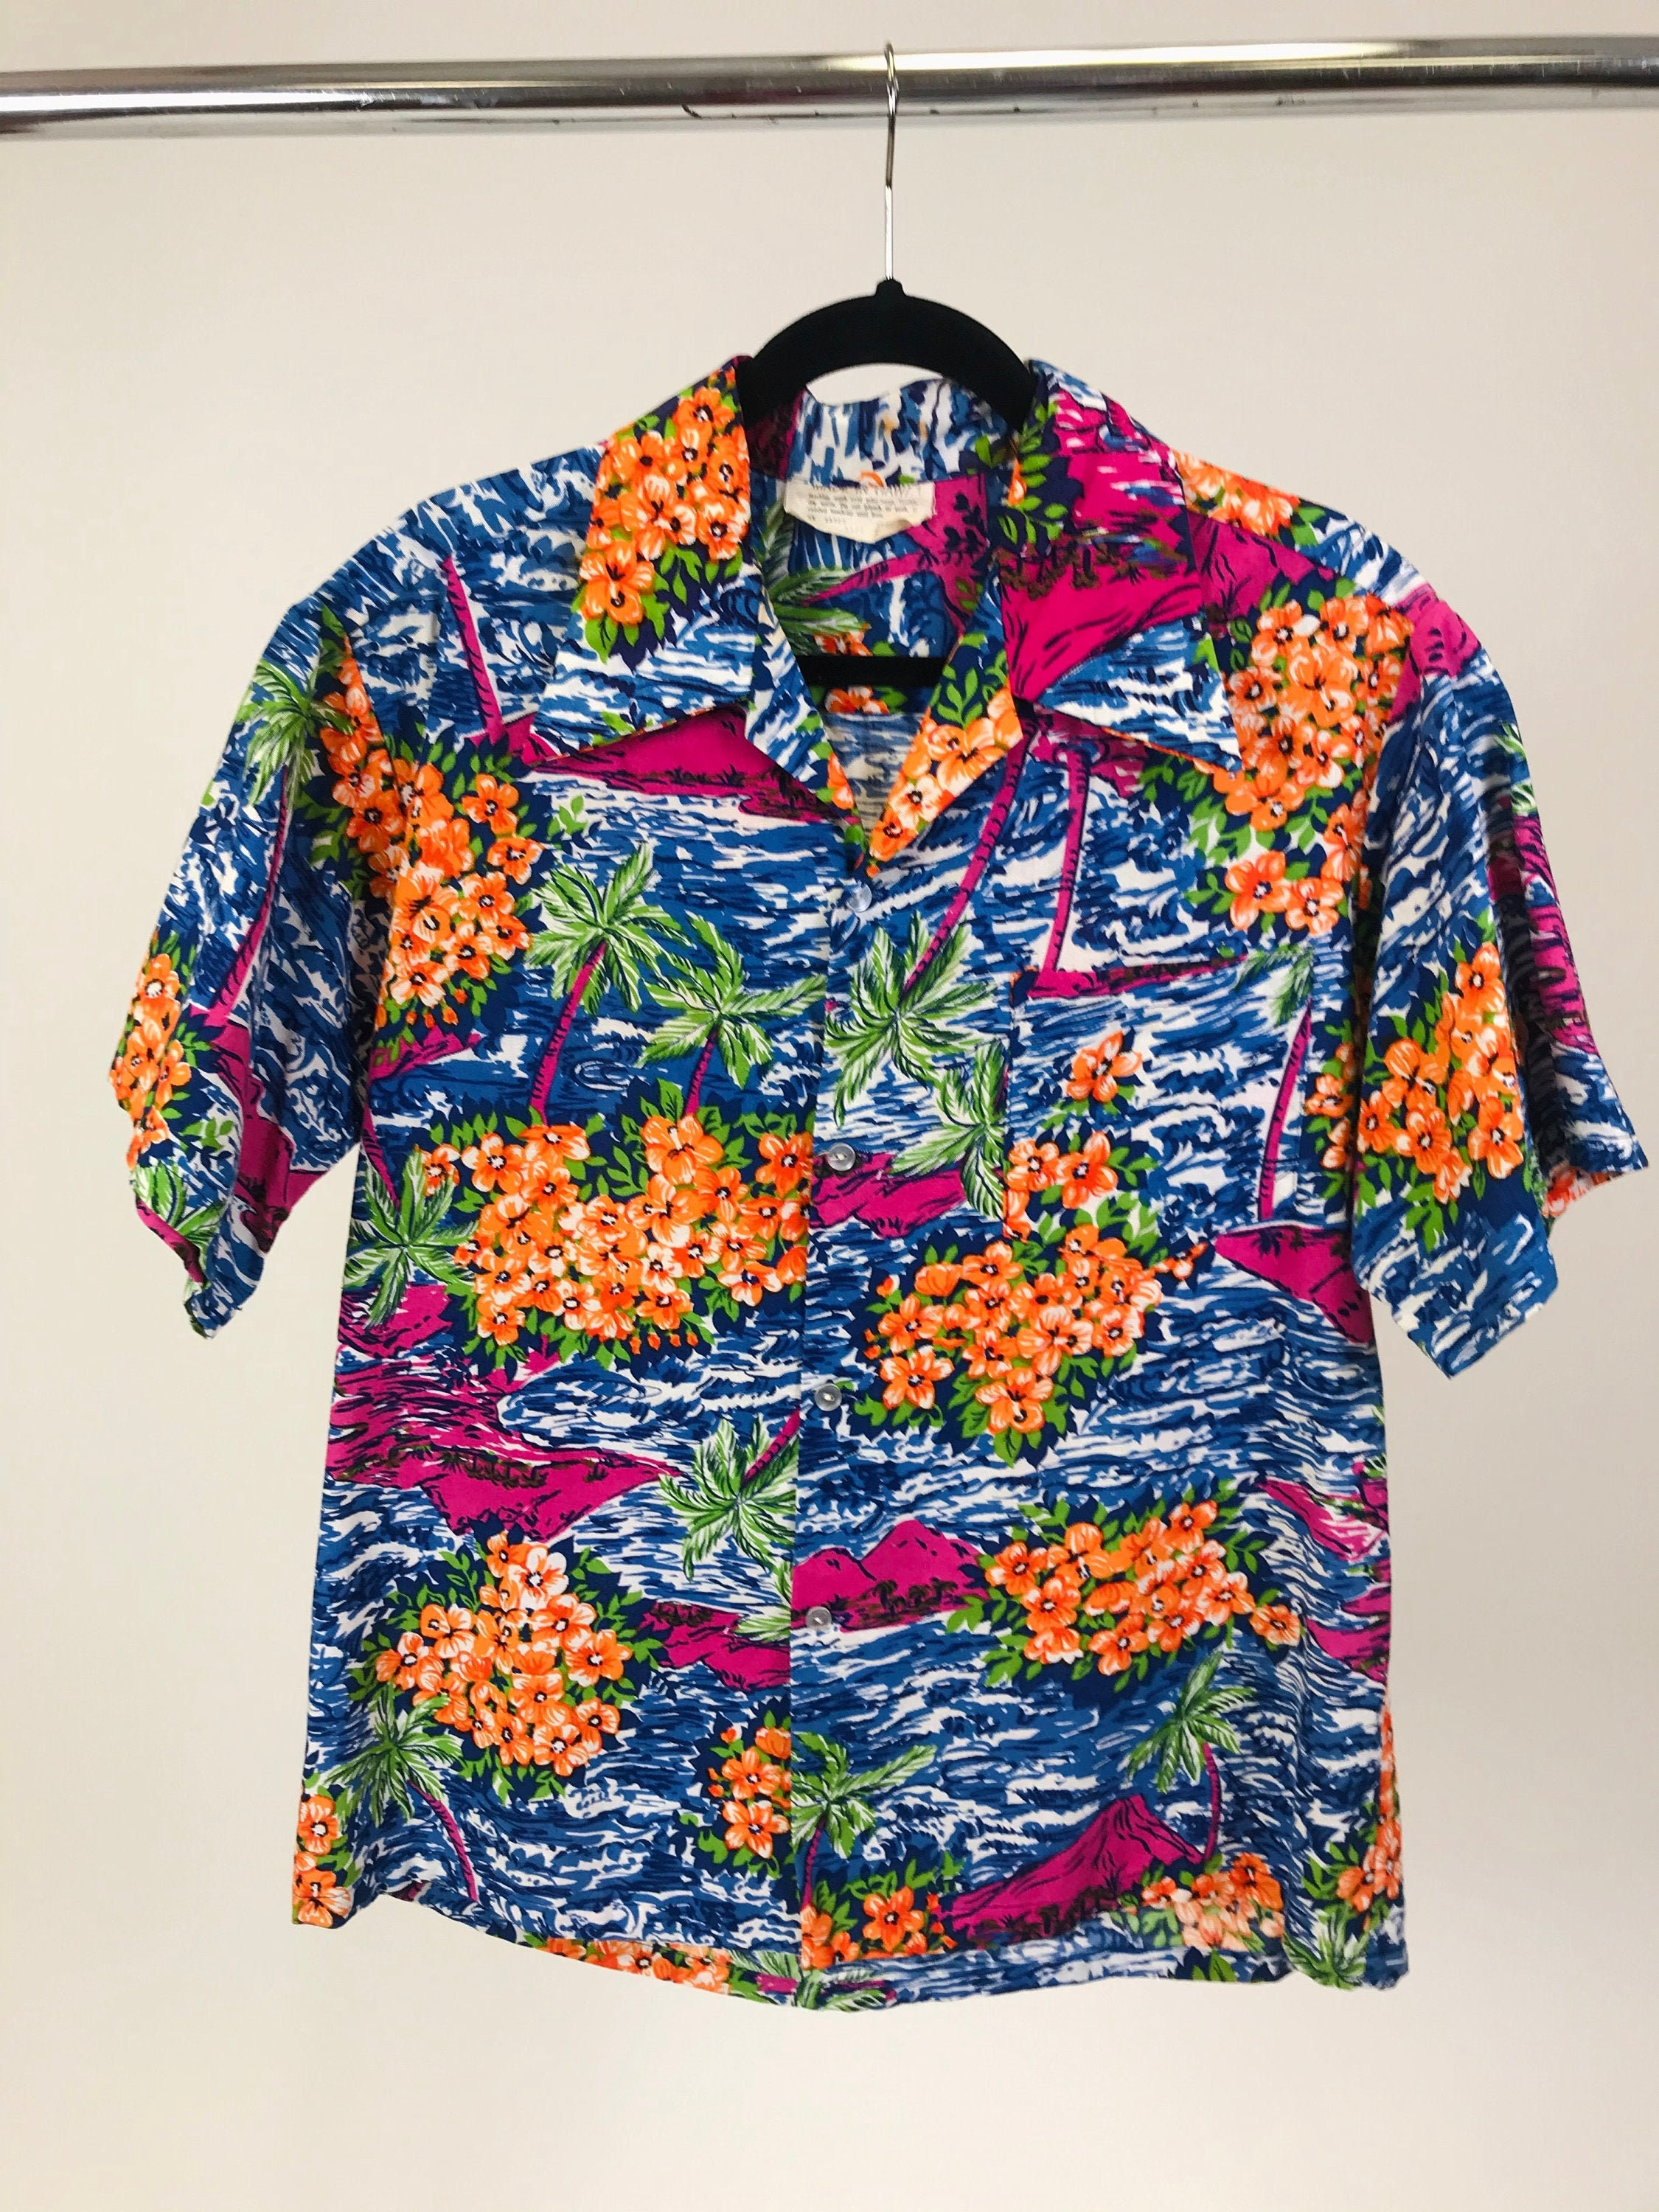 1940s Men's Shirts, Sweaters, Vests Vintage 1940S-1950S Mens Cotton Hawaiian Shirt With Orange Hibiscus  Palm Trees  Resort Beach Wear Made in Hawaii Unisex $15.00 AT vintagedancer.com